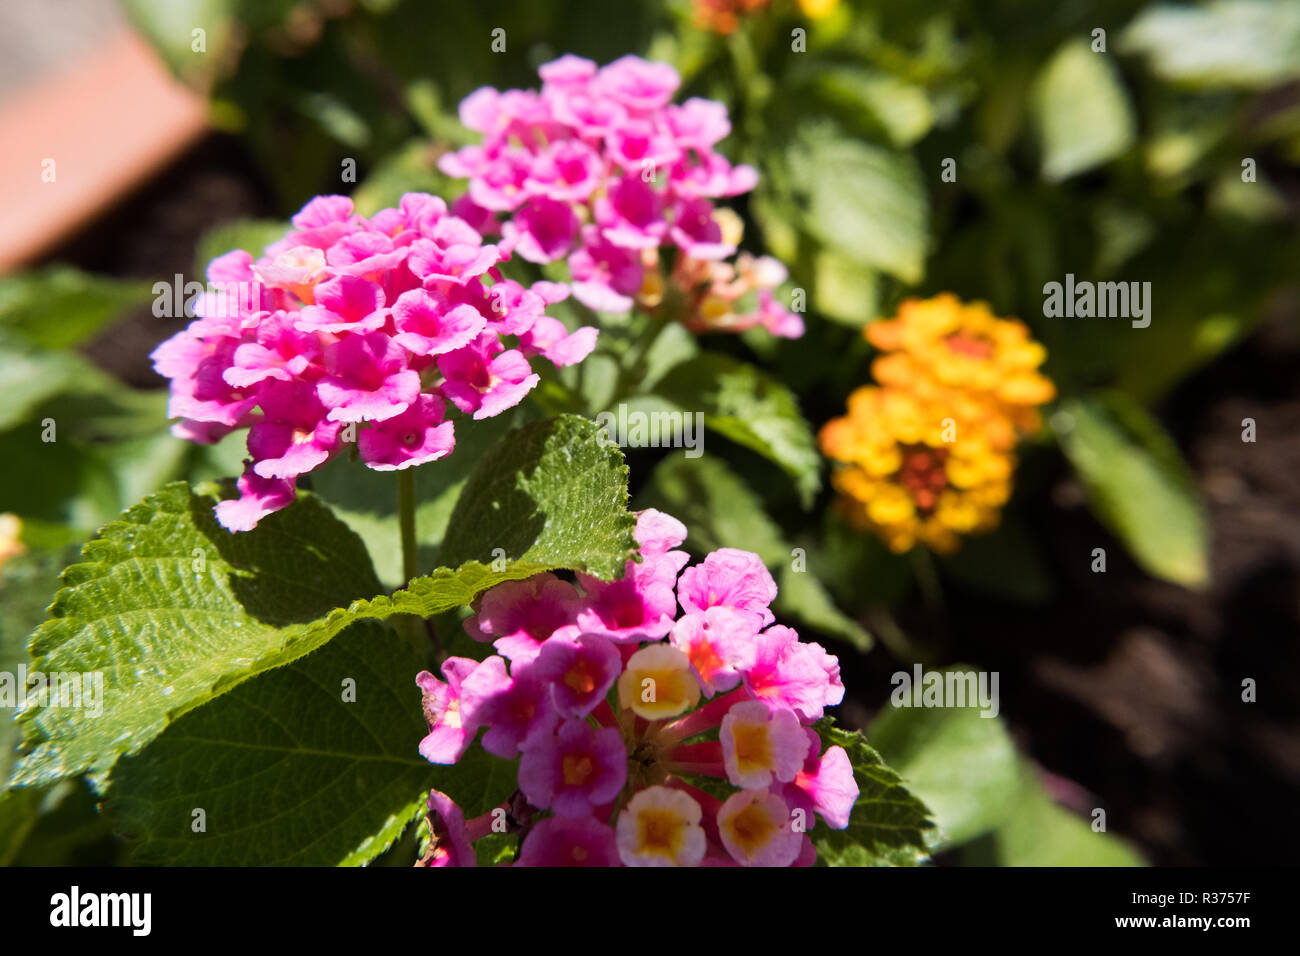 Nature wallpaper background pink Lantana Camara also known as Big-sage, Wild-sage, Hedge Flower, Weeping Lantana, Lantana Camara Linn or Tickberry. No Stock Photo